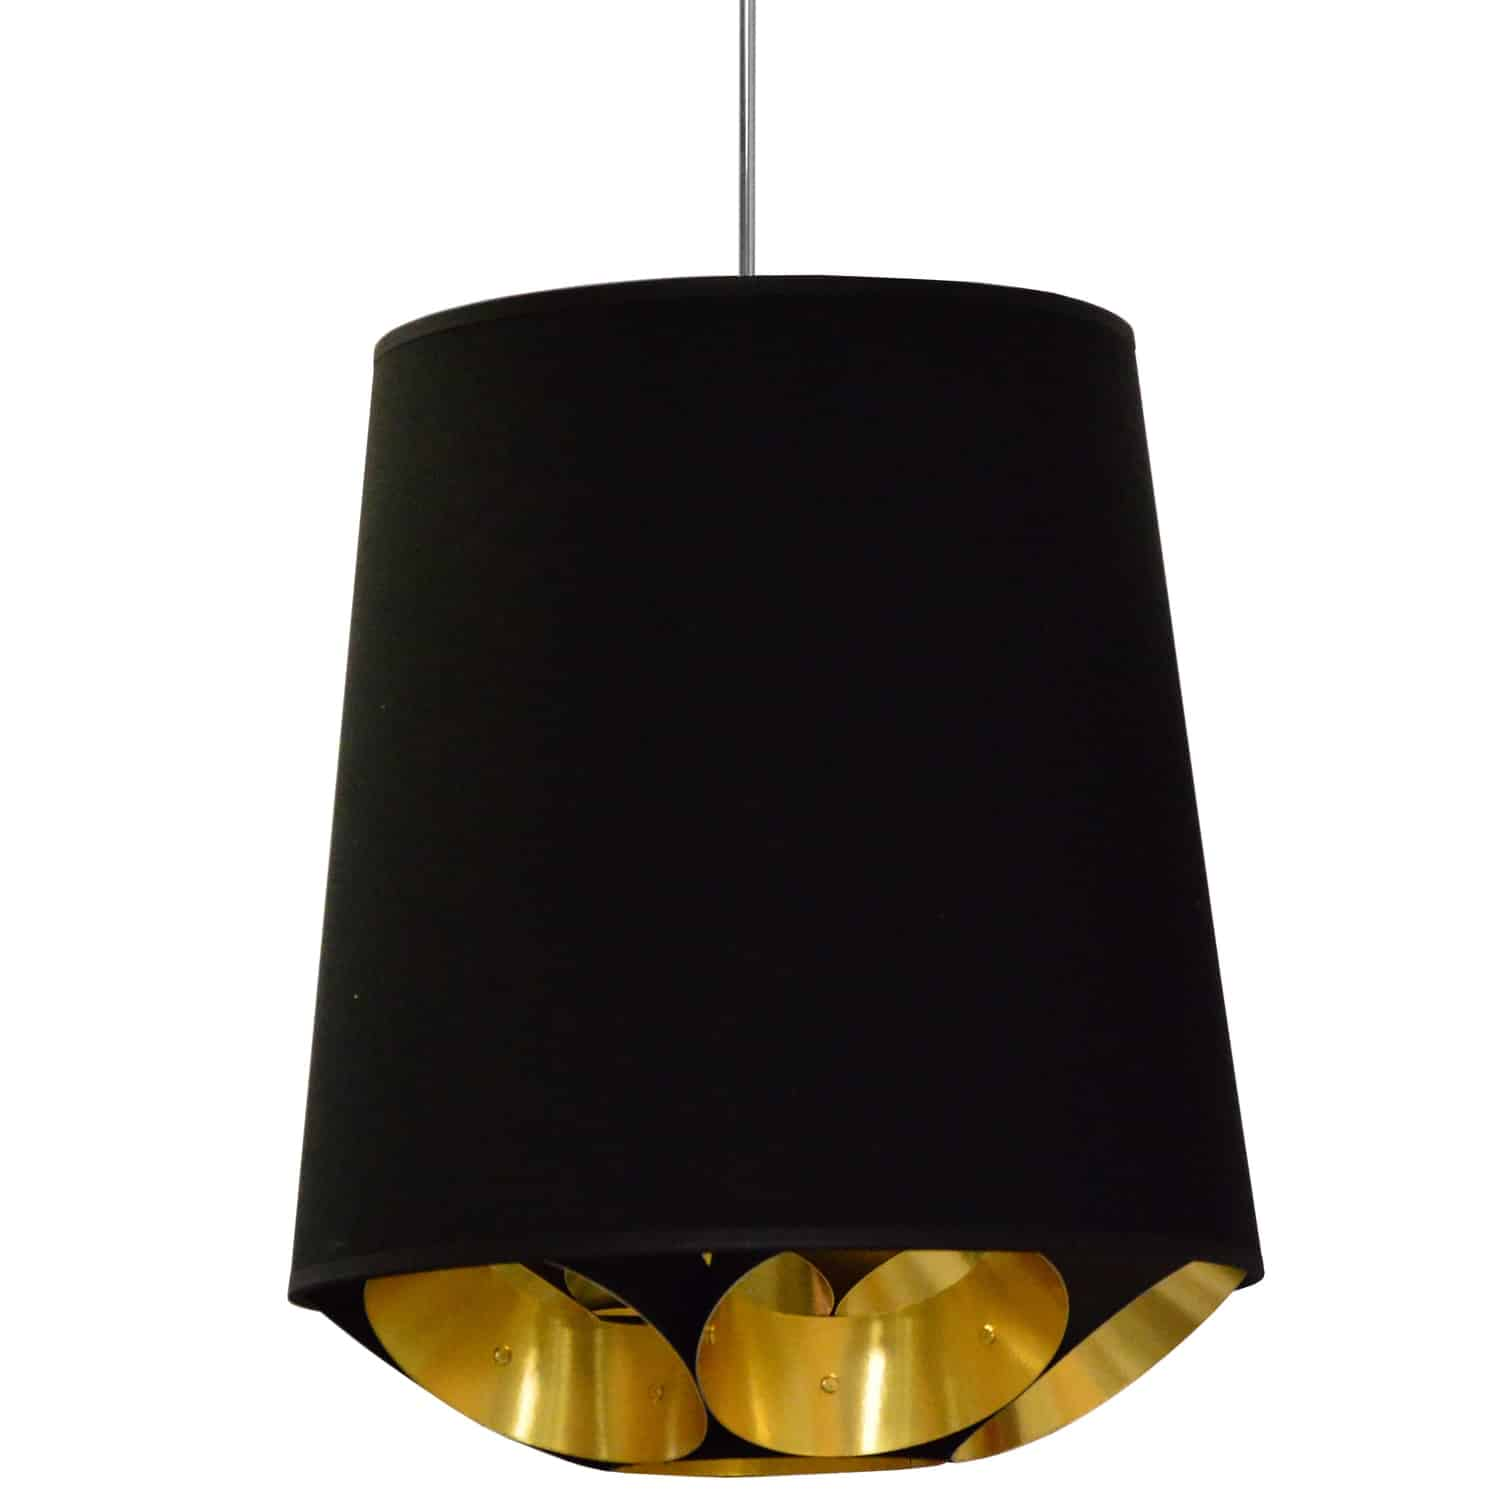 1 Light Hadleigh Pendant Black on Gold, Medium Black